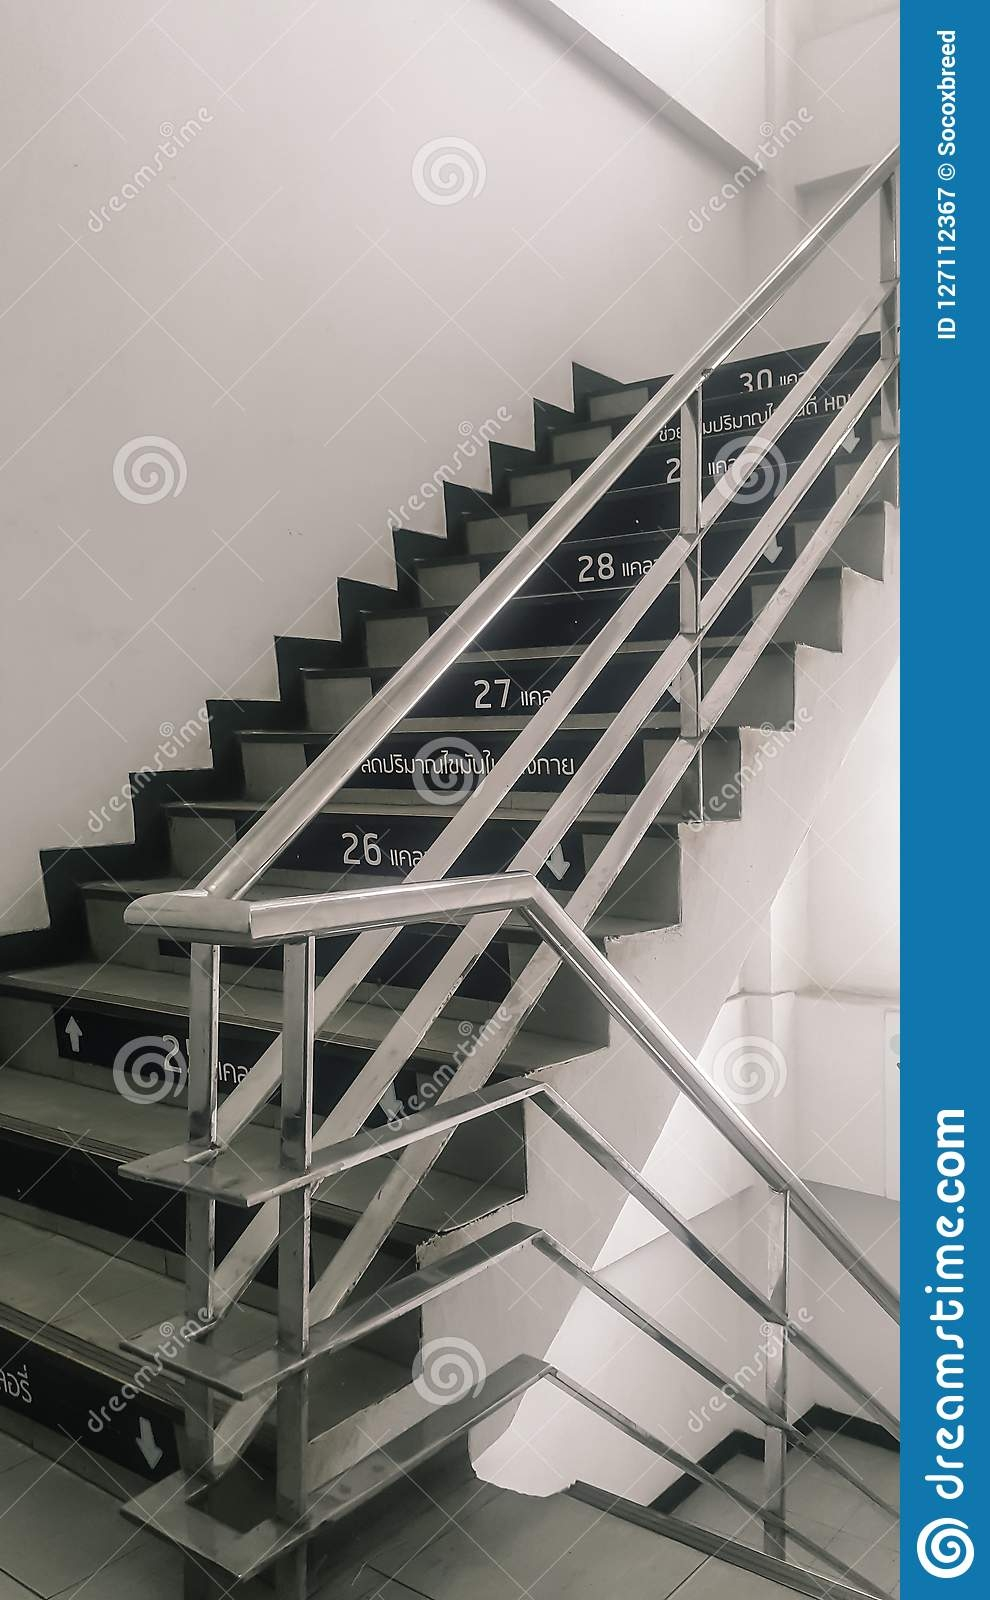 Stairs Up In The Building With Stainless Steel Handrails Stock   Stainless Steel Handrails Near Me   Glass Railing Systems   Staircase Railing   Stair Railing   Metal   Relaxdays Stainless